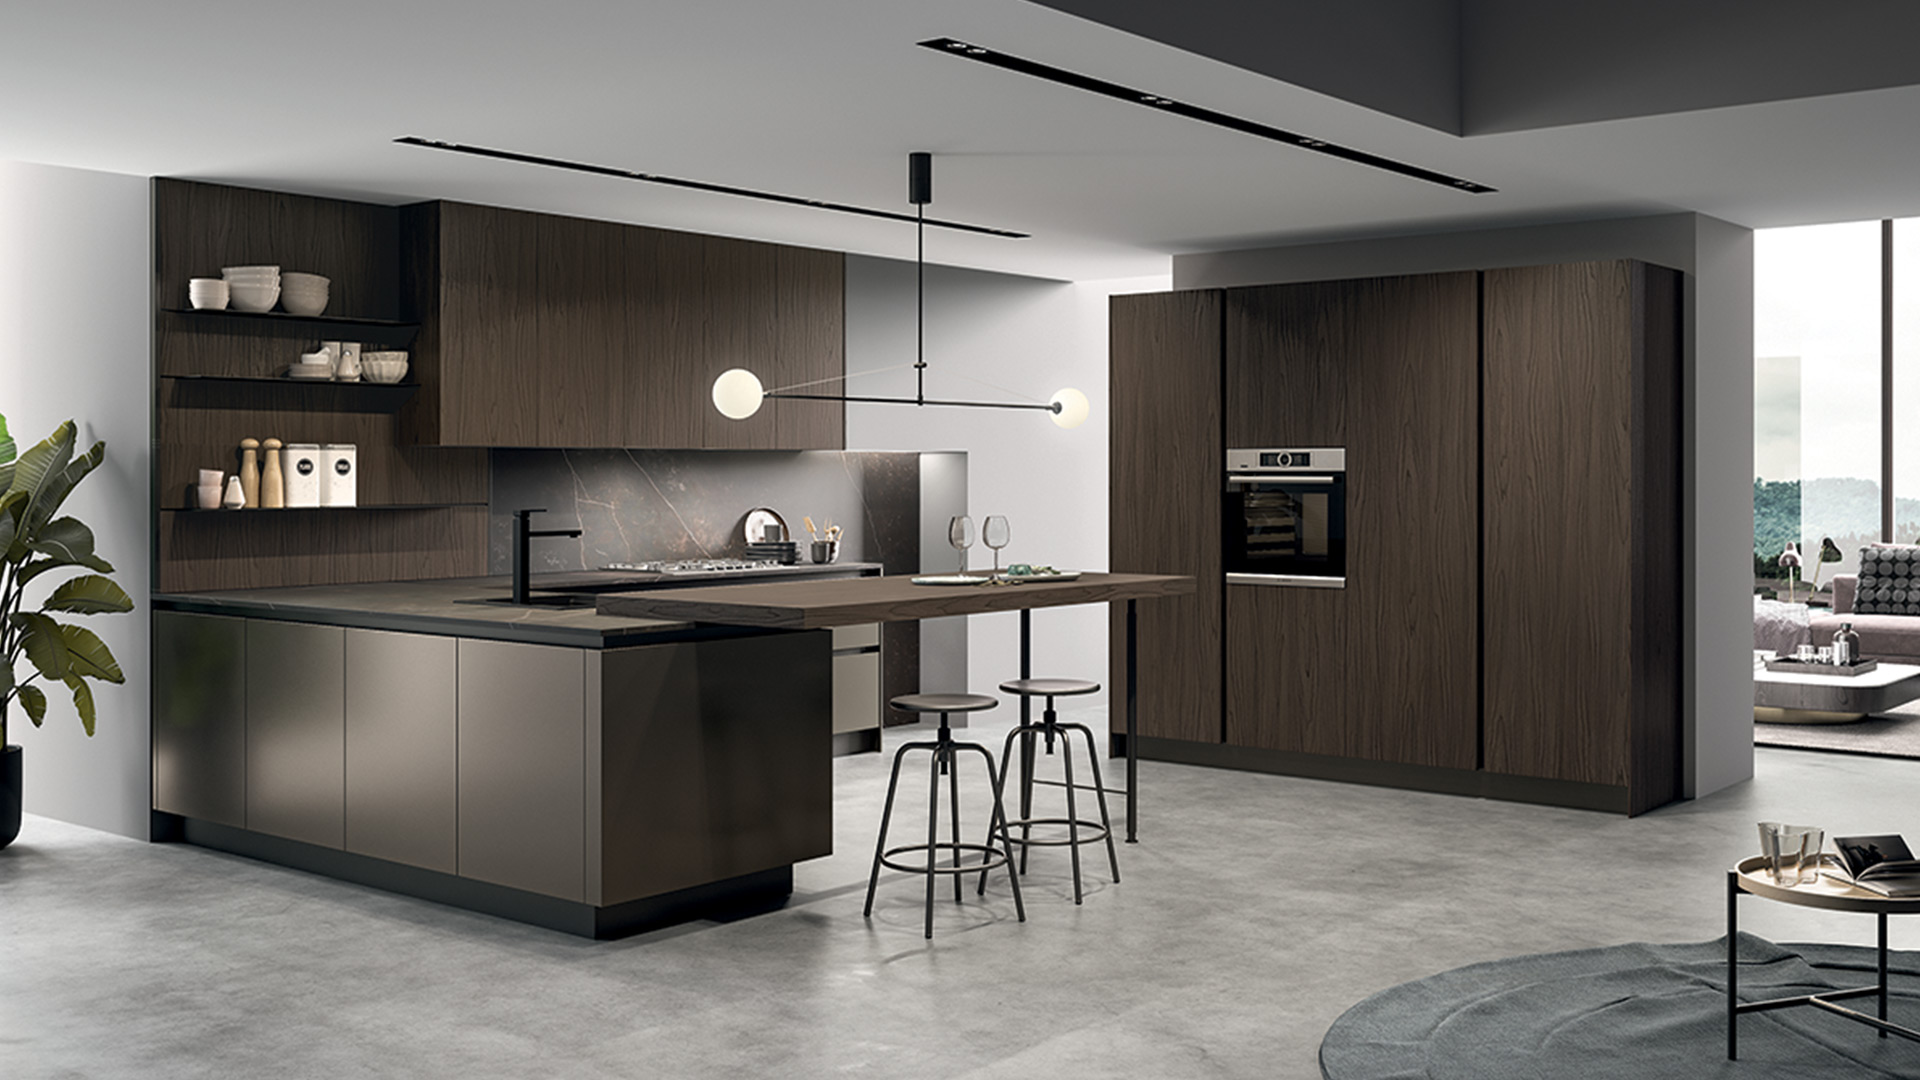 Kitchen made in Italy